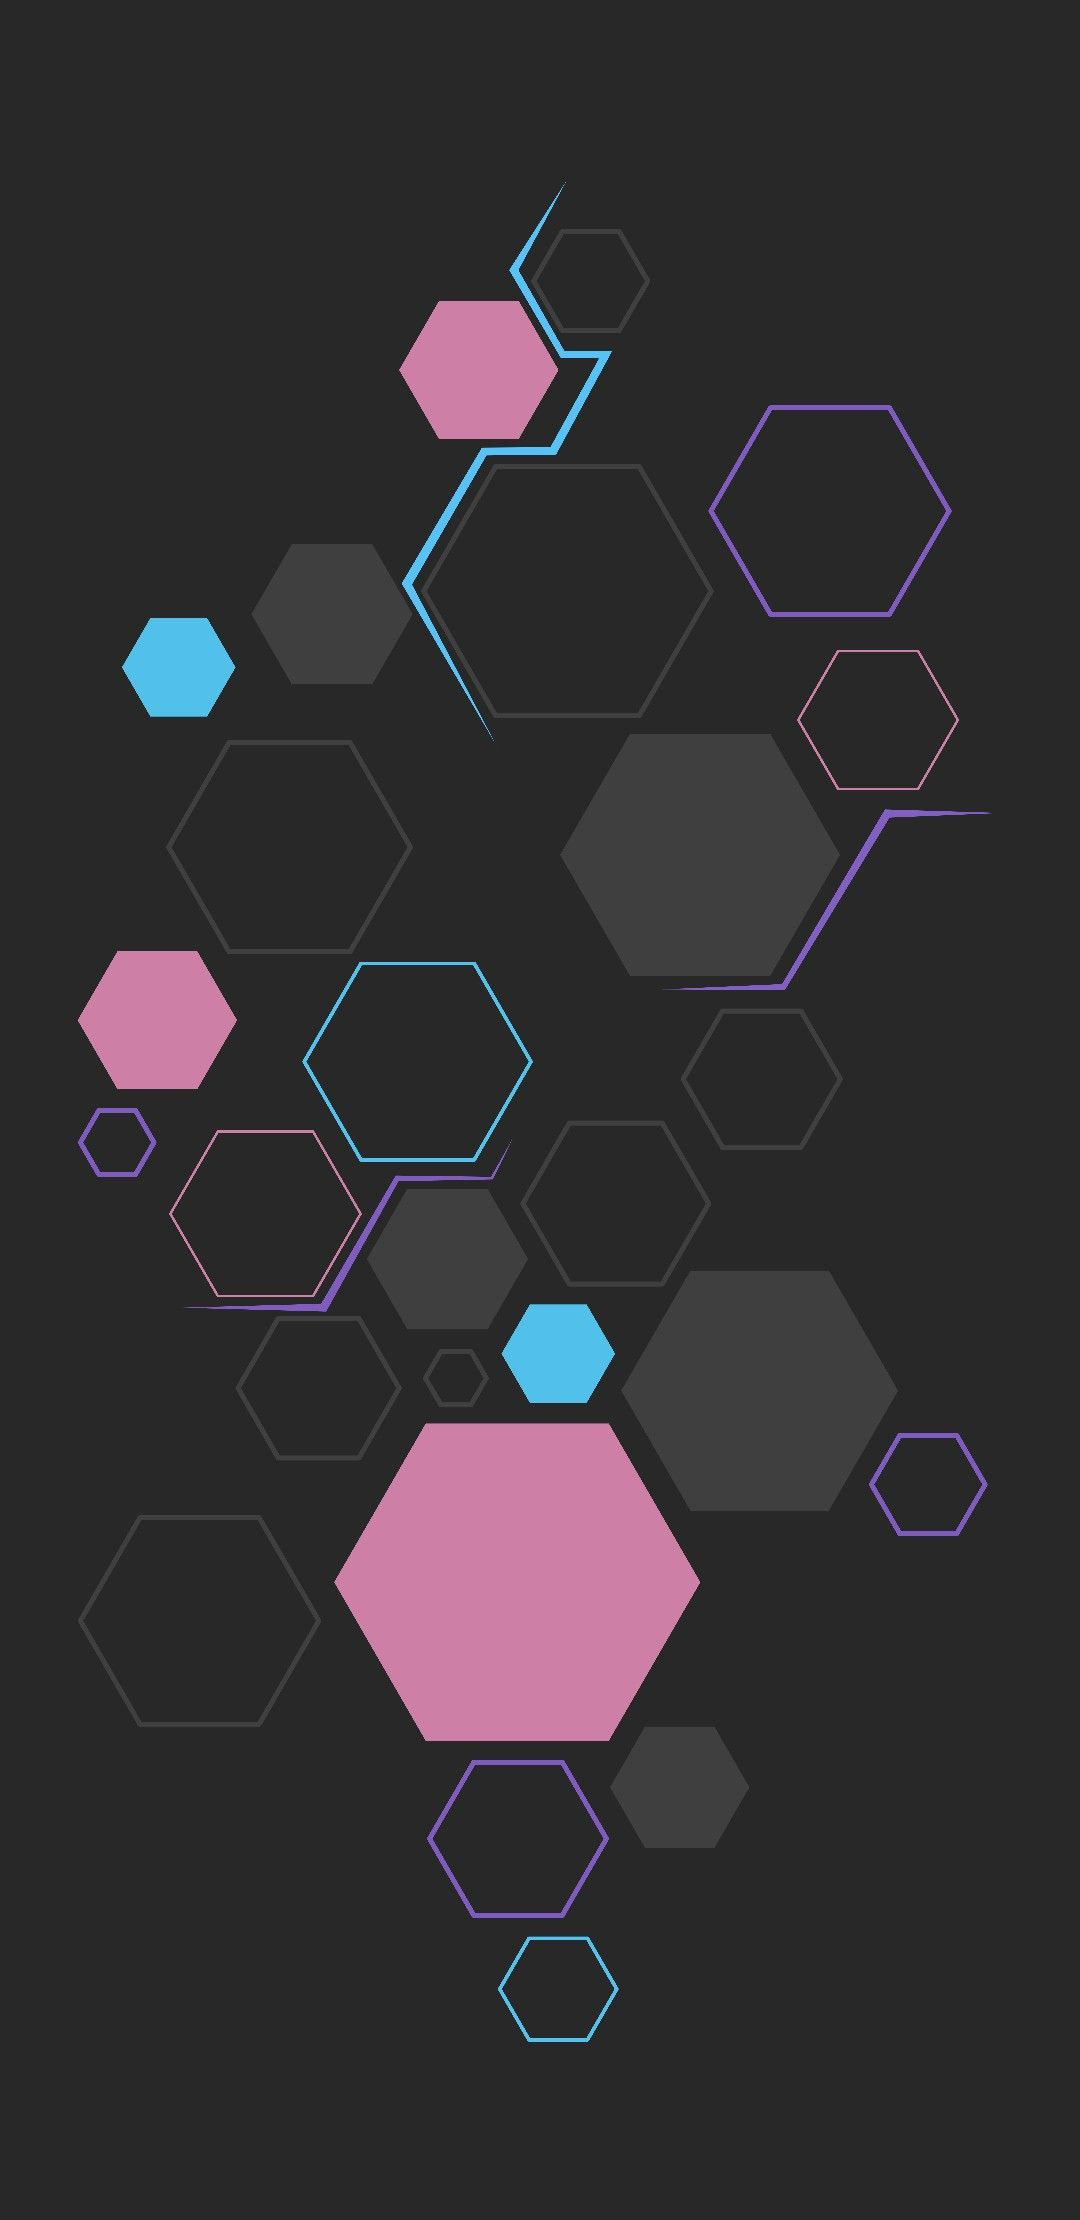 Pin by Robby Casey on Cool Phone Wallpapers! Geometric